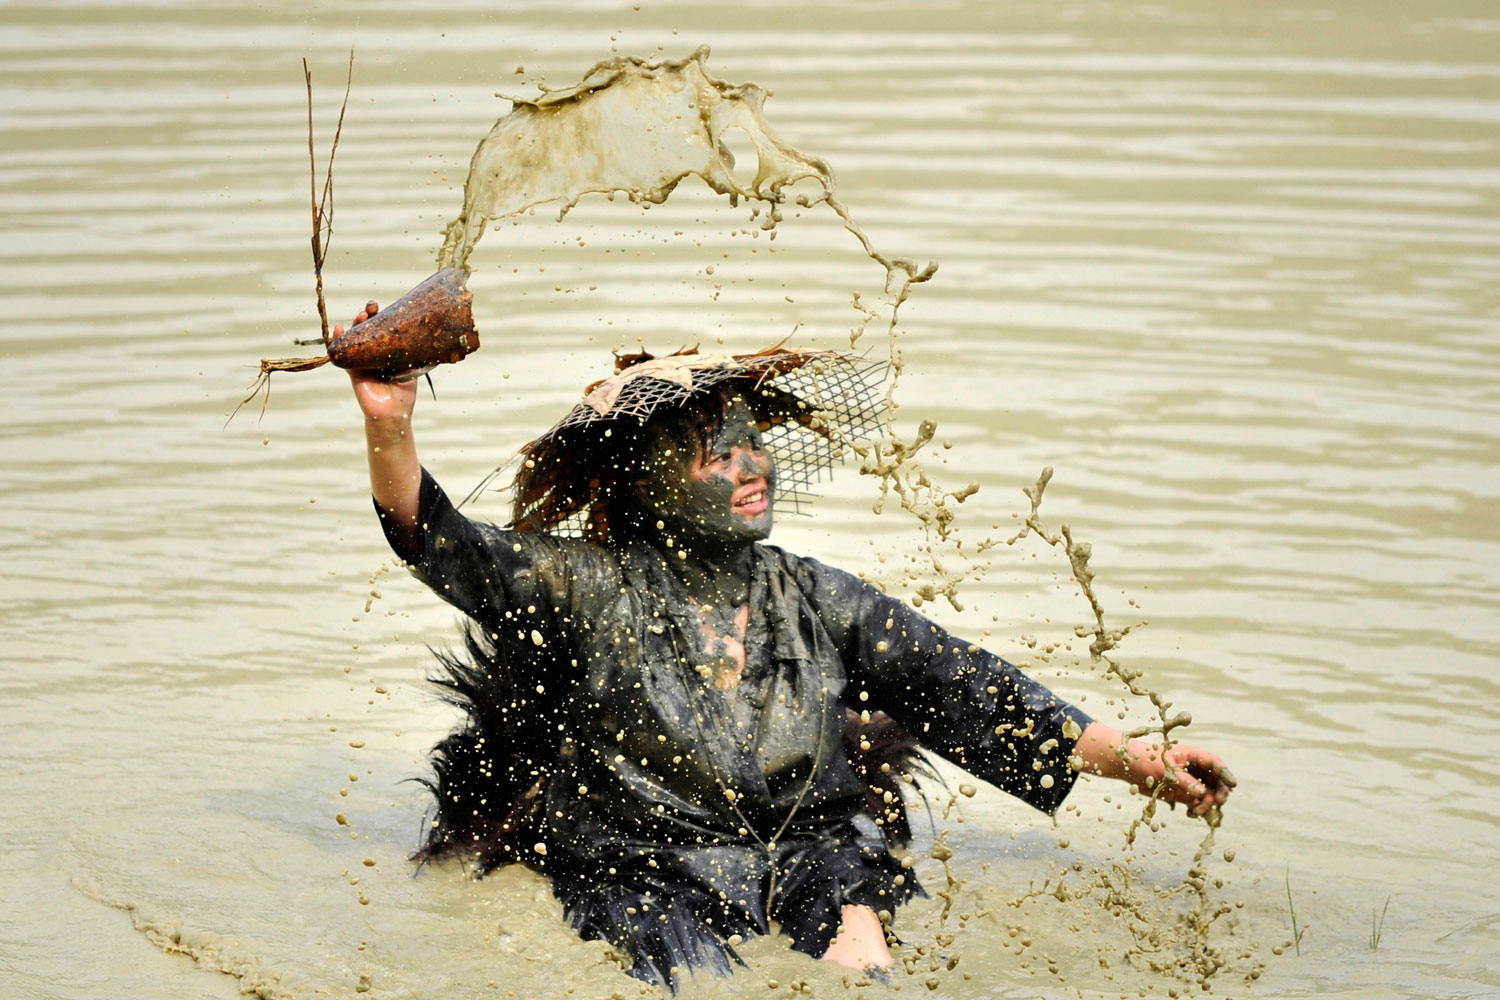 July 6, 2011. A woman splashes water with a container as she performs the Shuigu dance during a cultural festival in Jianhe county, Guizhou province. The dance, which is also known as the water drum dance, has a history of over 500 years in local Miao villages.